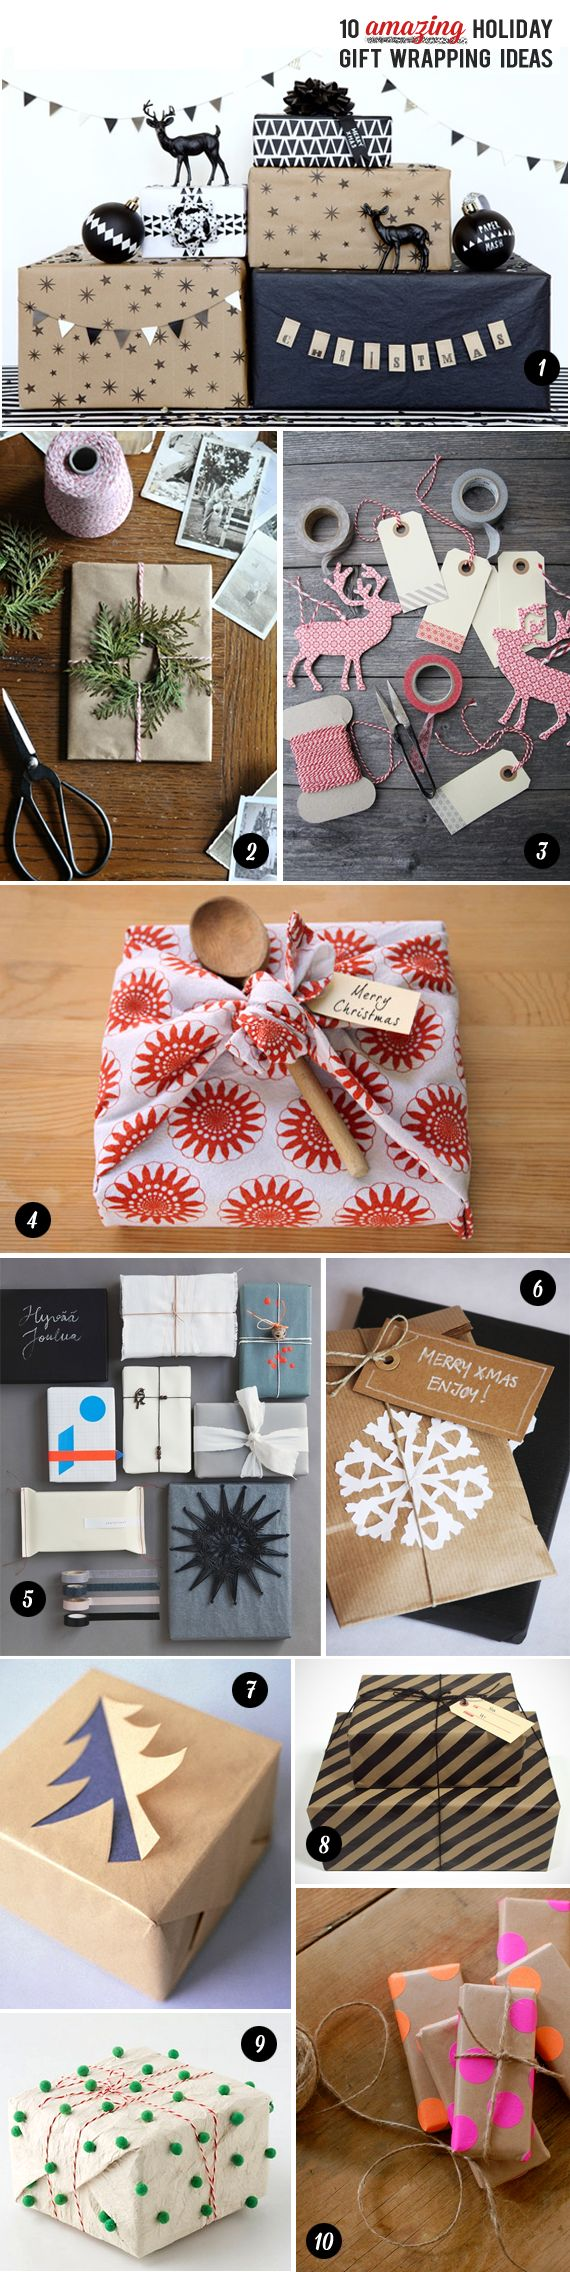 10 Amazing Holiday Gift Wrapping Ideas